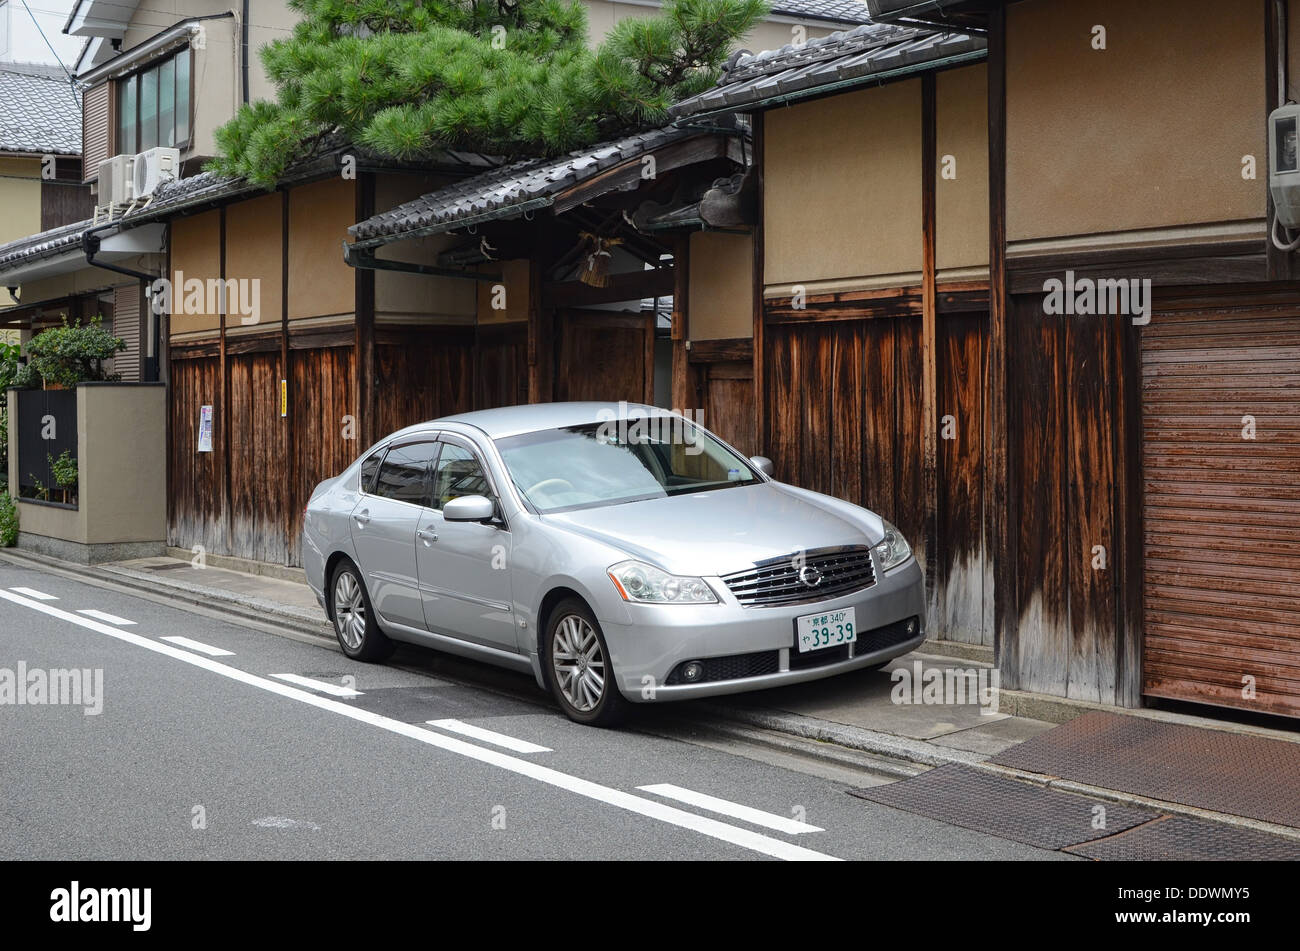 A Nissan car parked in a street in Kyoto, Japan. - Stock Image